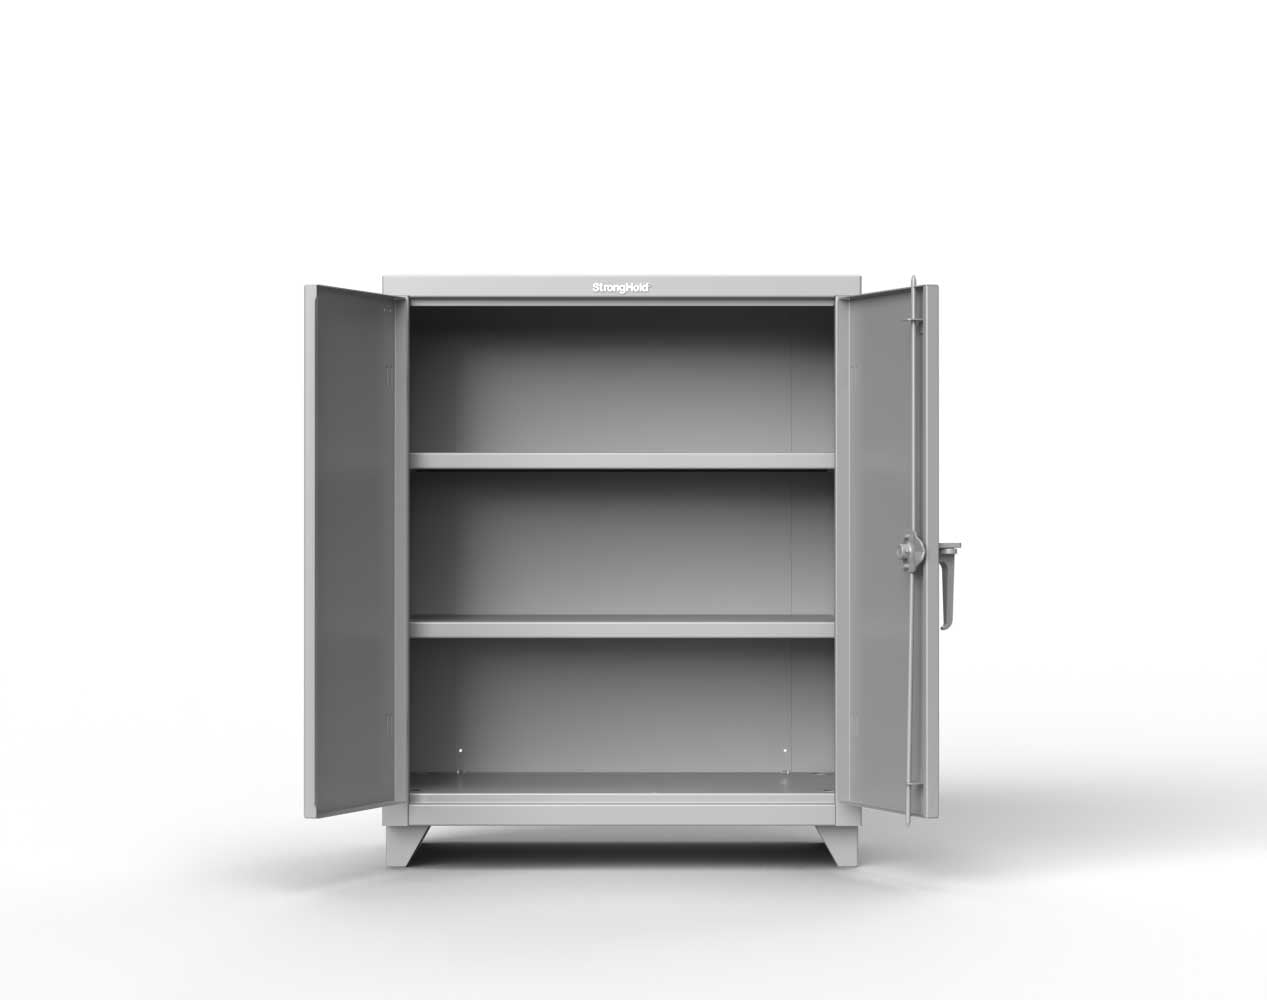 Heavy Duty 14 GA Counter-Height Cabinet with 2 Shelves – 36 In. W x 24 In. D x 42 In. H